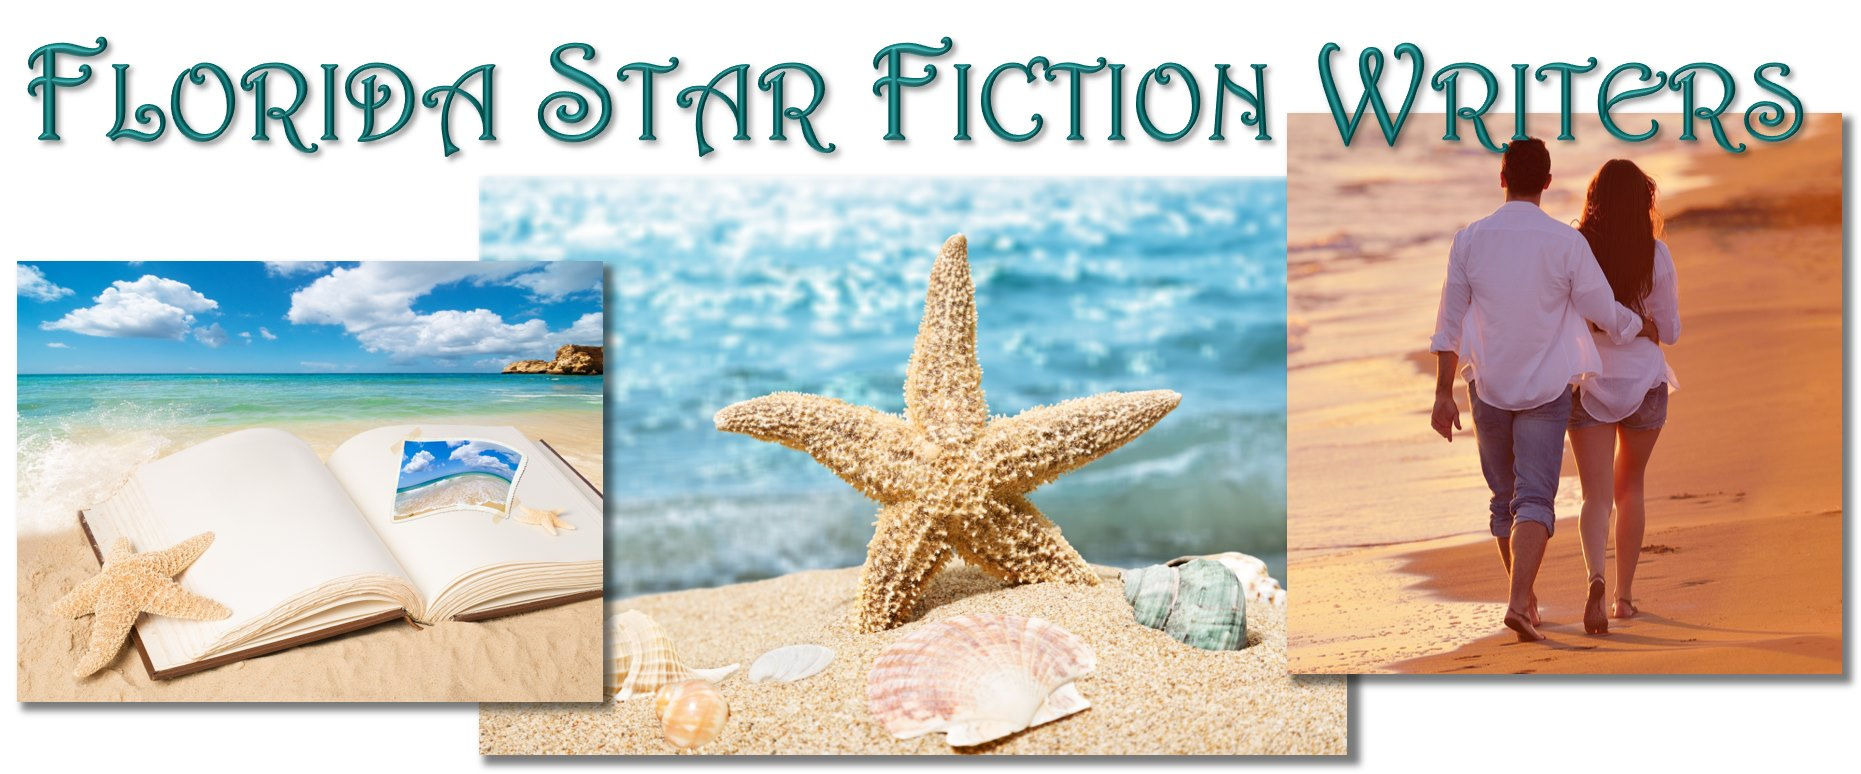 Florida Star Fiction Writers